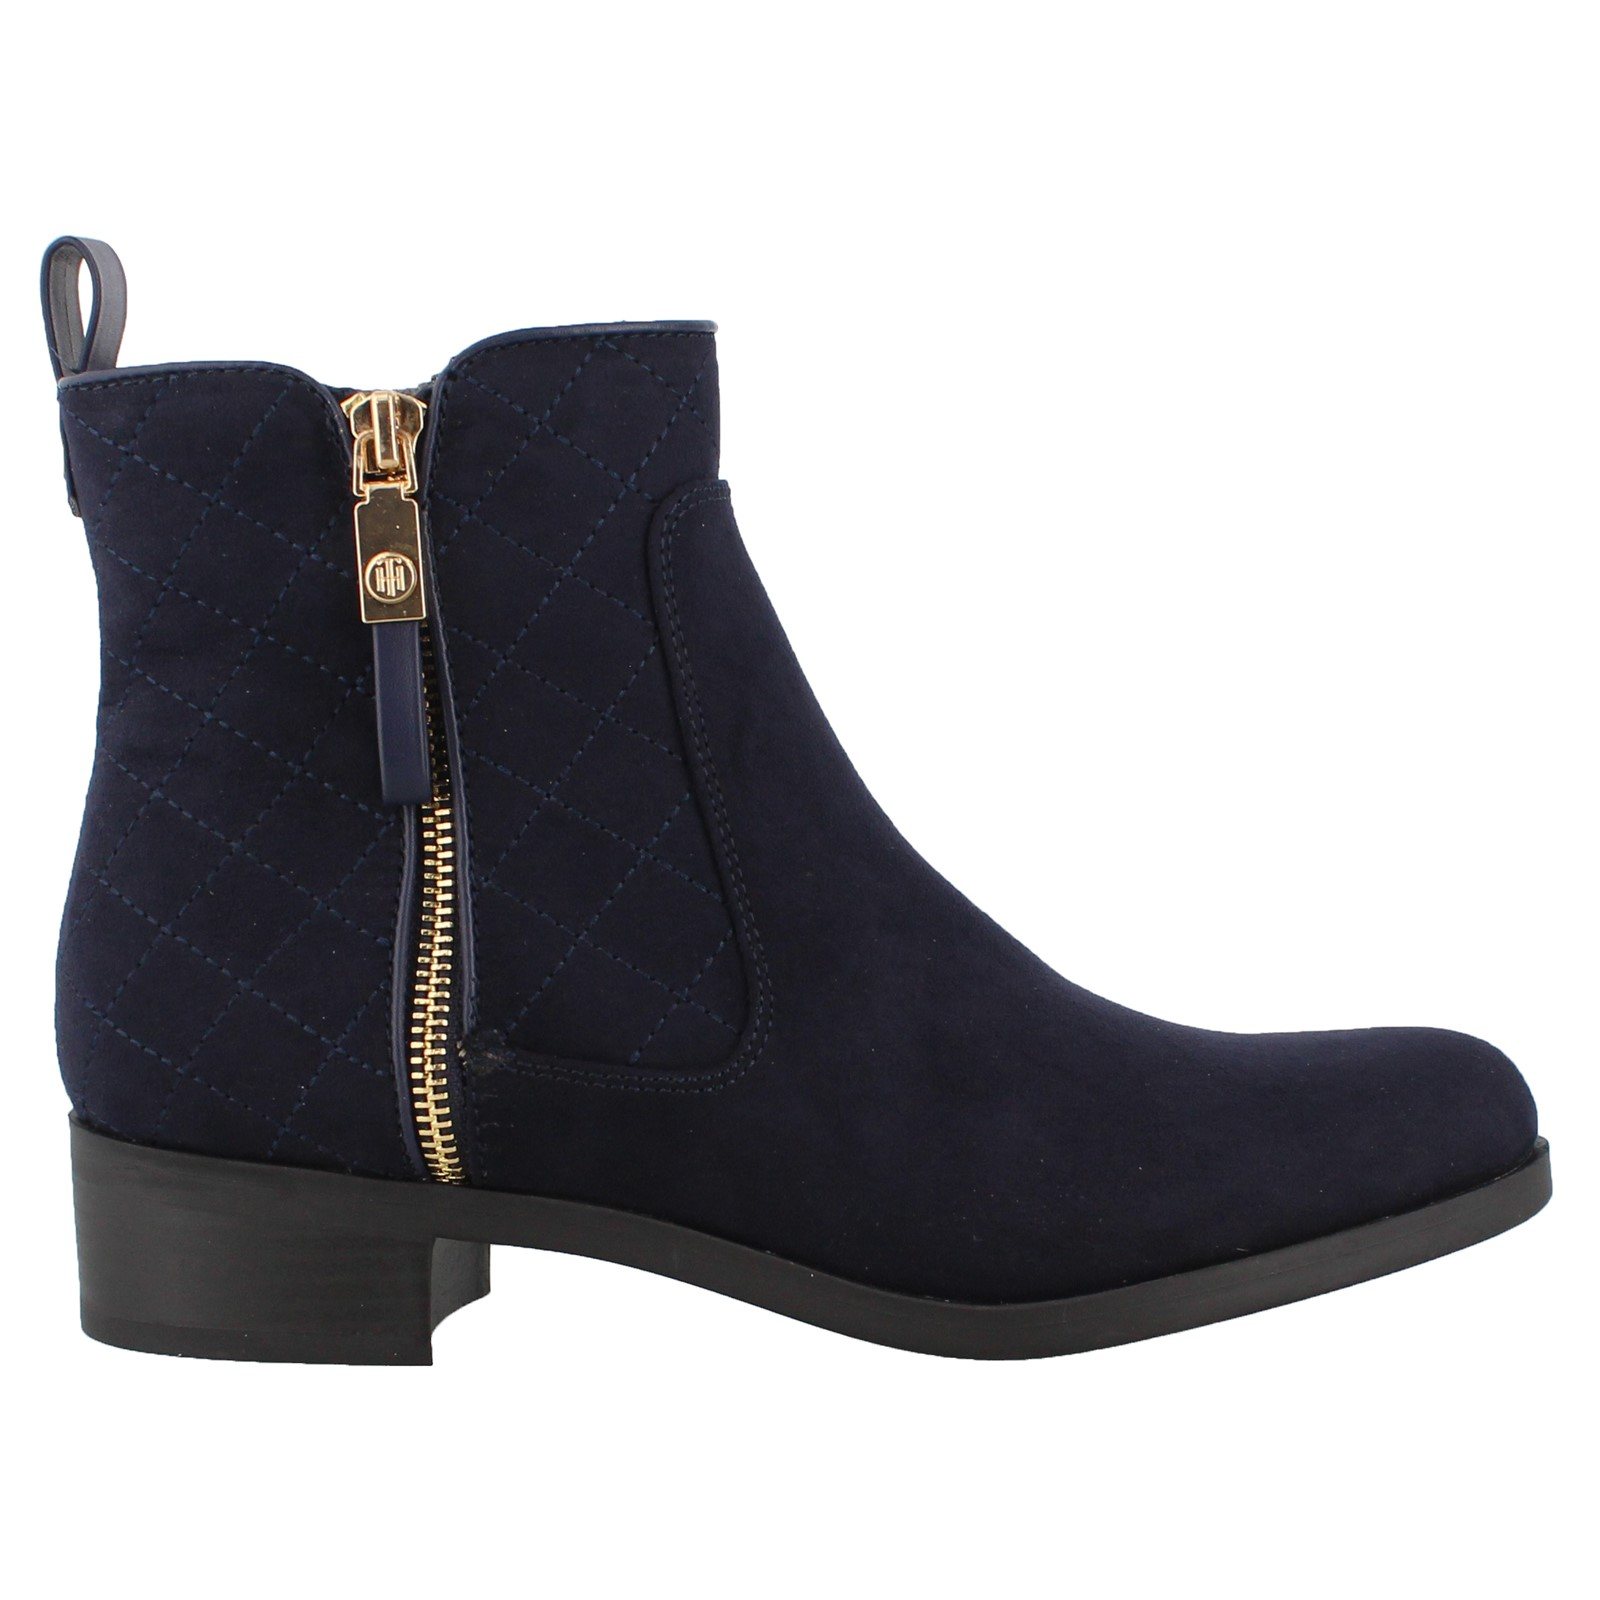 Details zu Navy Suede Tommy Hilfiger Ankle Boots